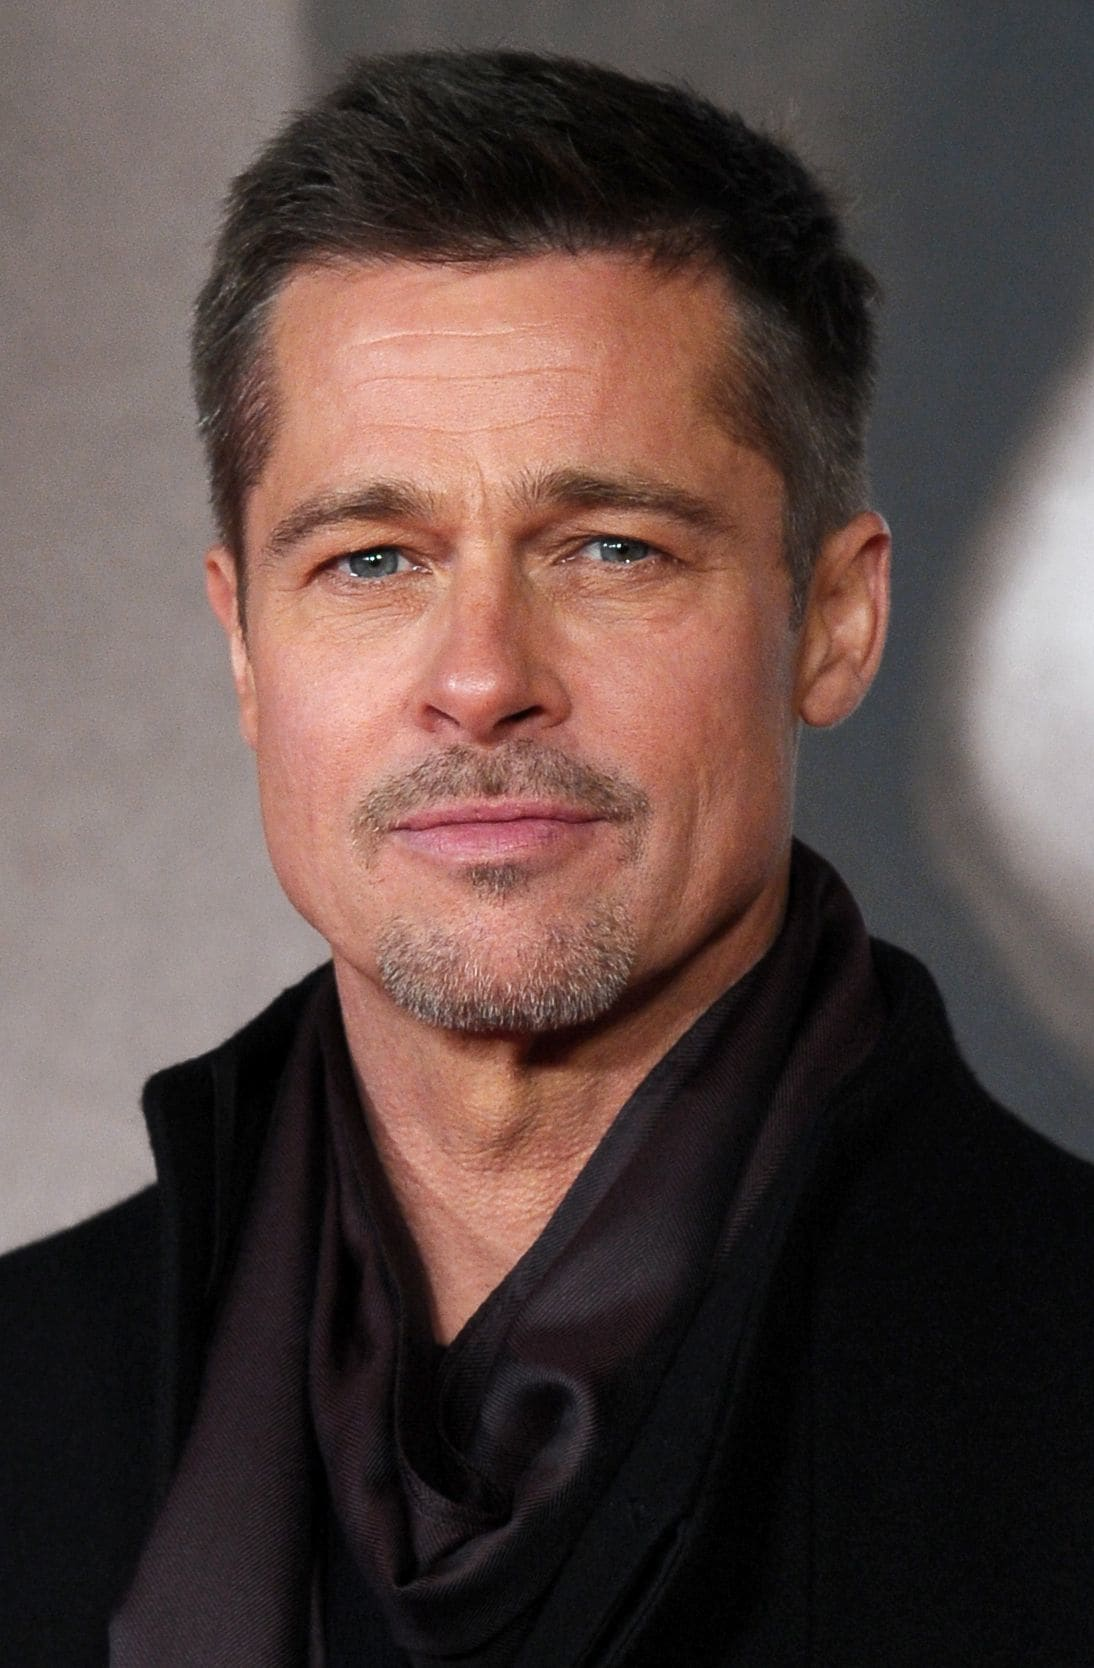 actor brad pitt with a brunette crew cut hairstyle